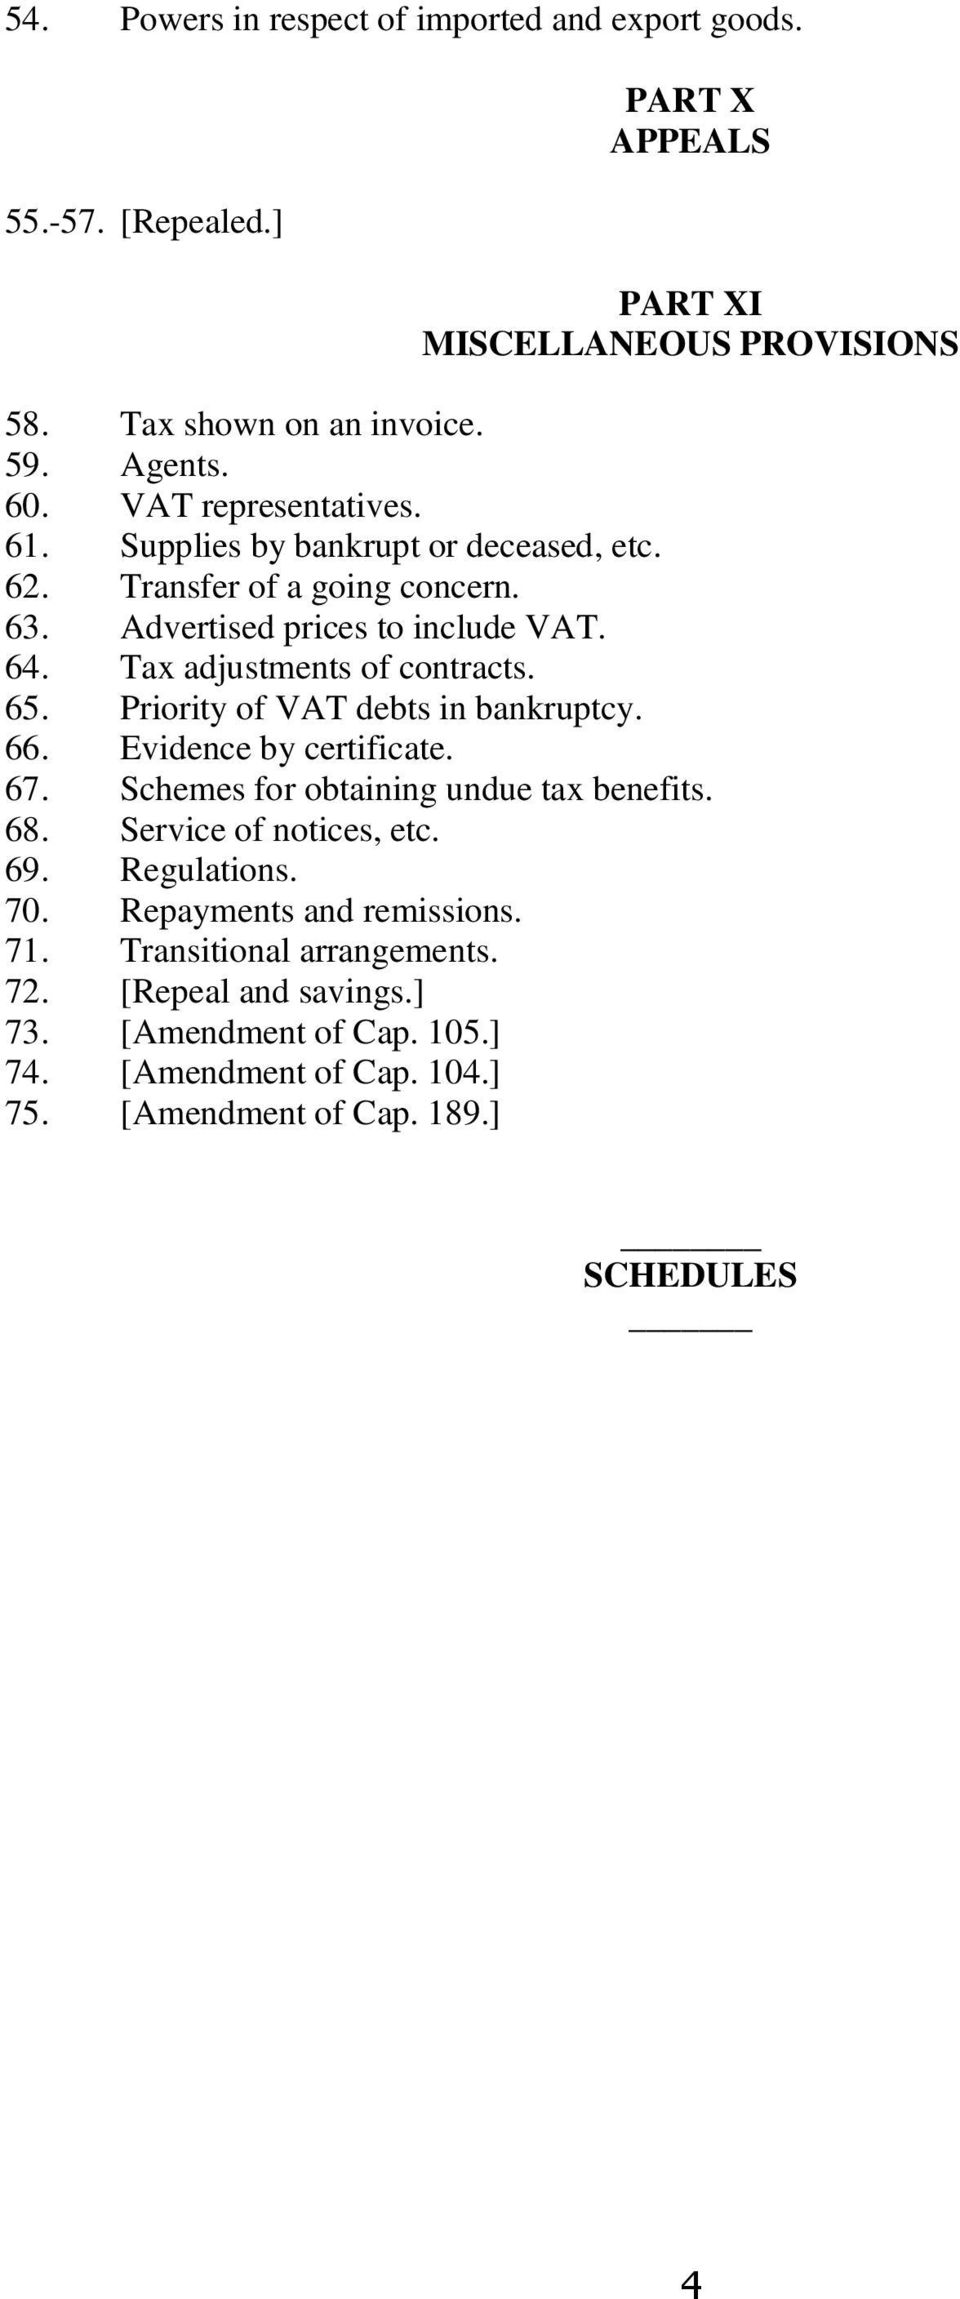 65. Priority of VAT debts in bankruptcy. 66. Evidence by certificate. 67. Schemes for obtaining undue tax benefits. 68. Service of notices, etc. 69. Regulations. 70.